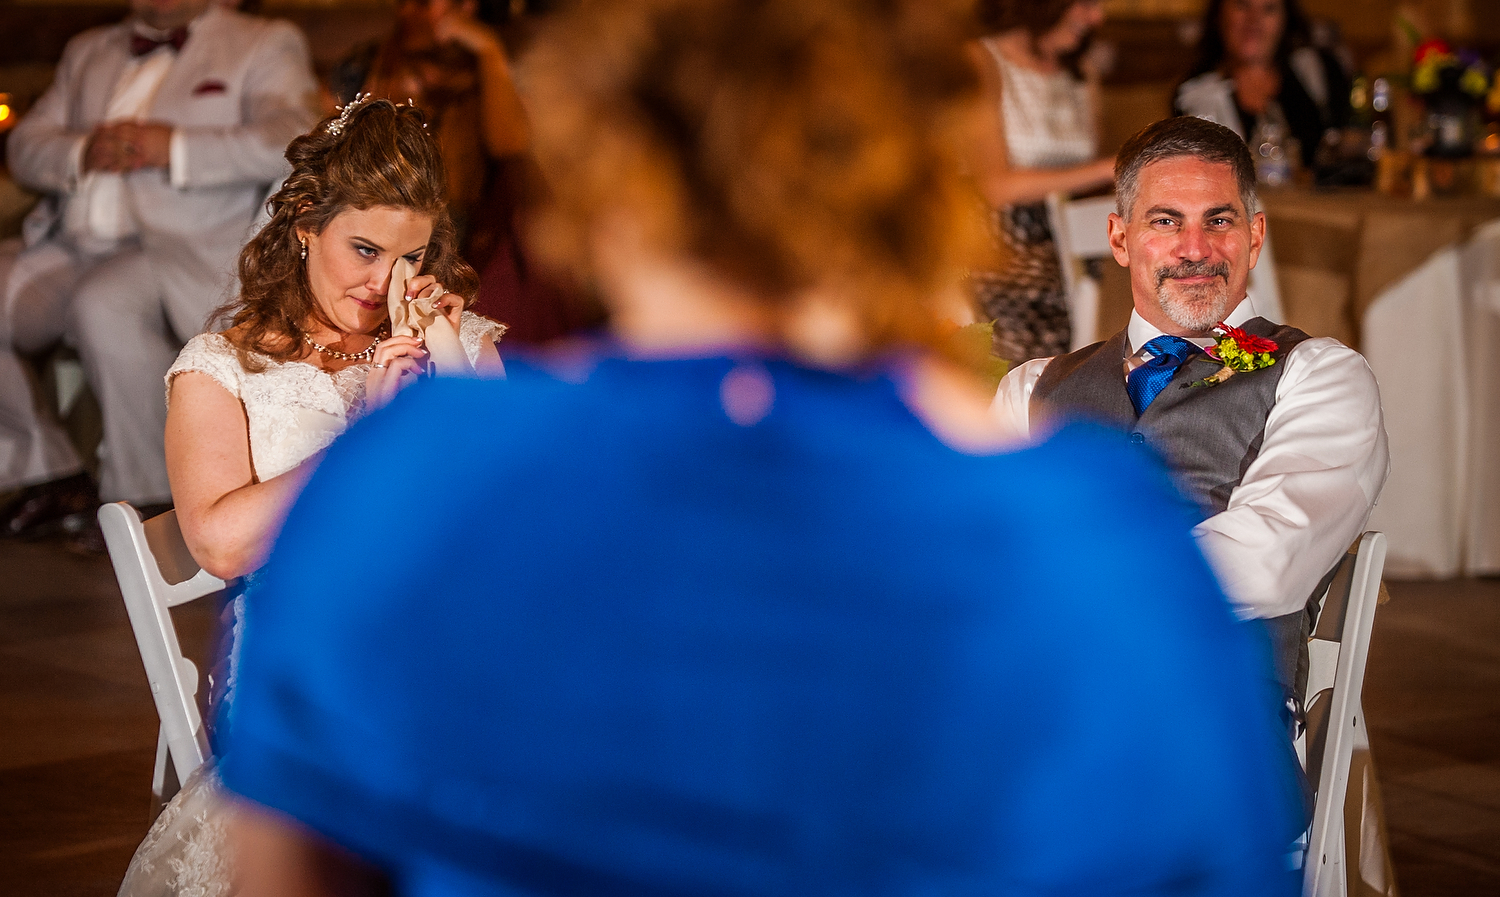 Gallery-moments-nix-weddings-11A.jpg